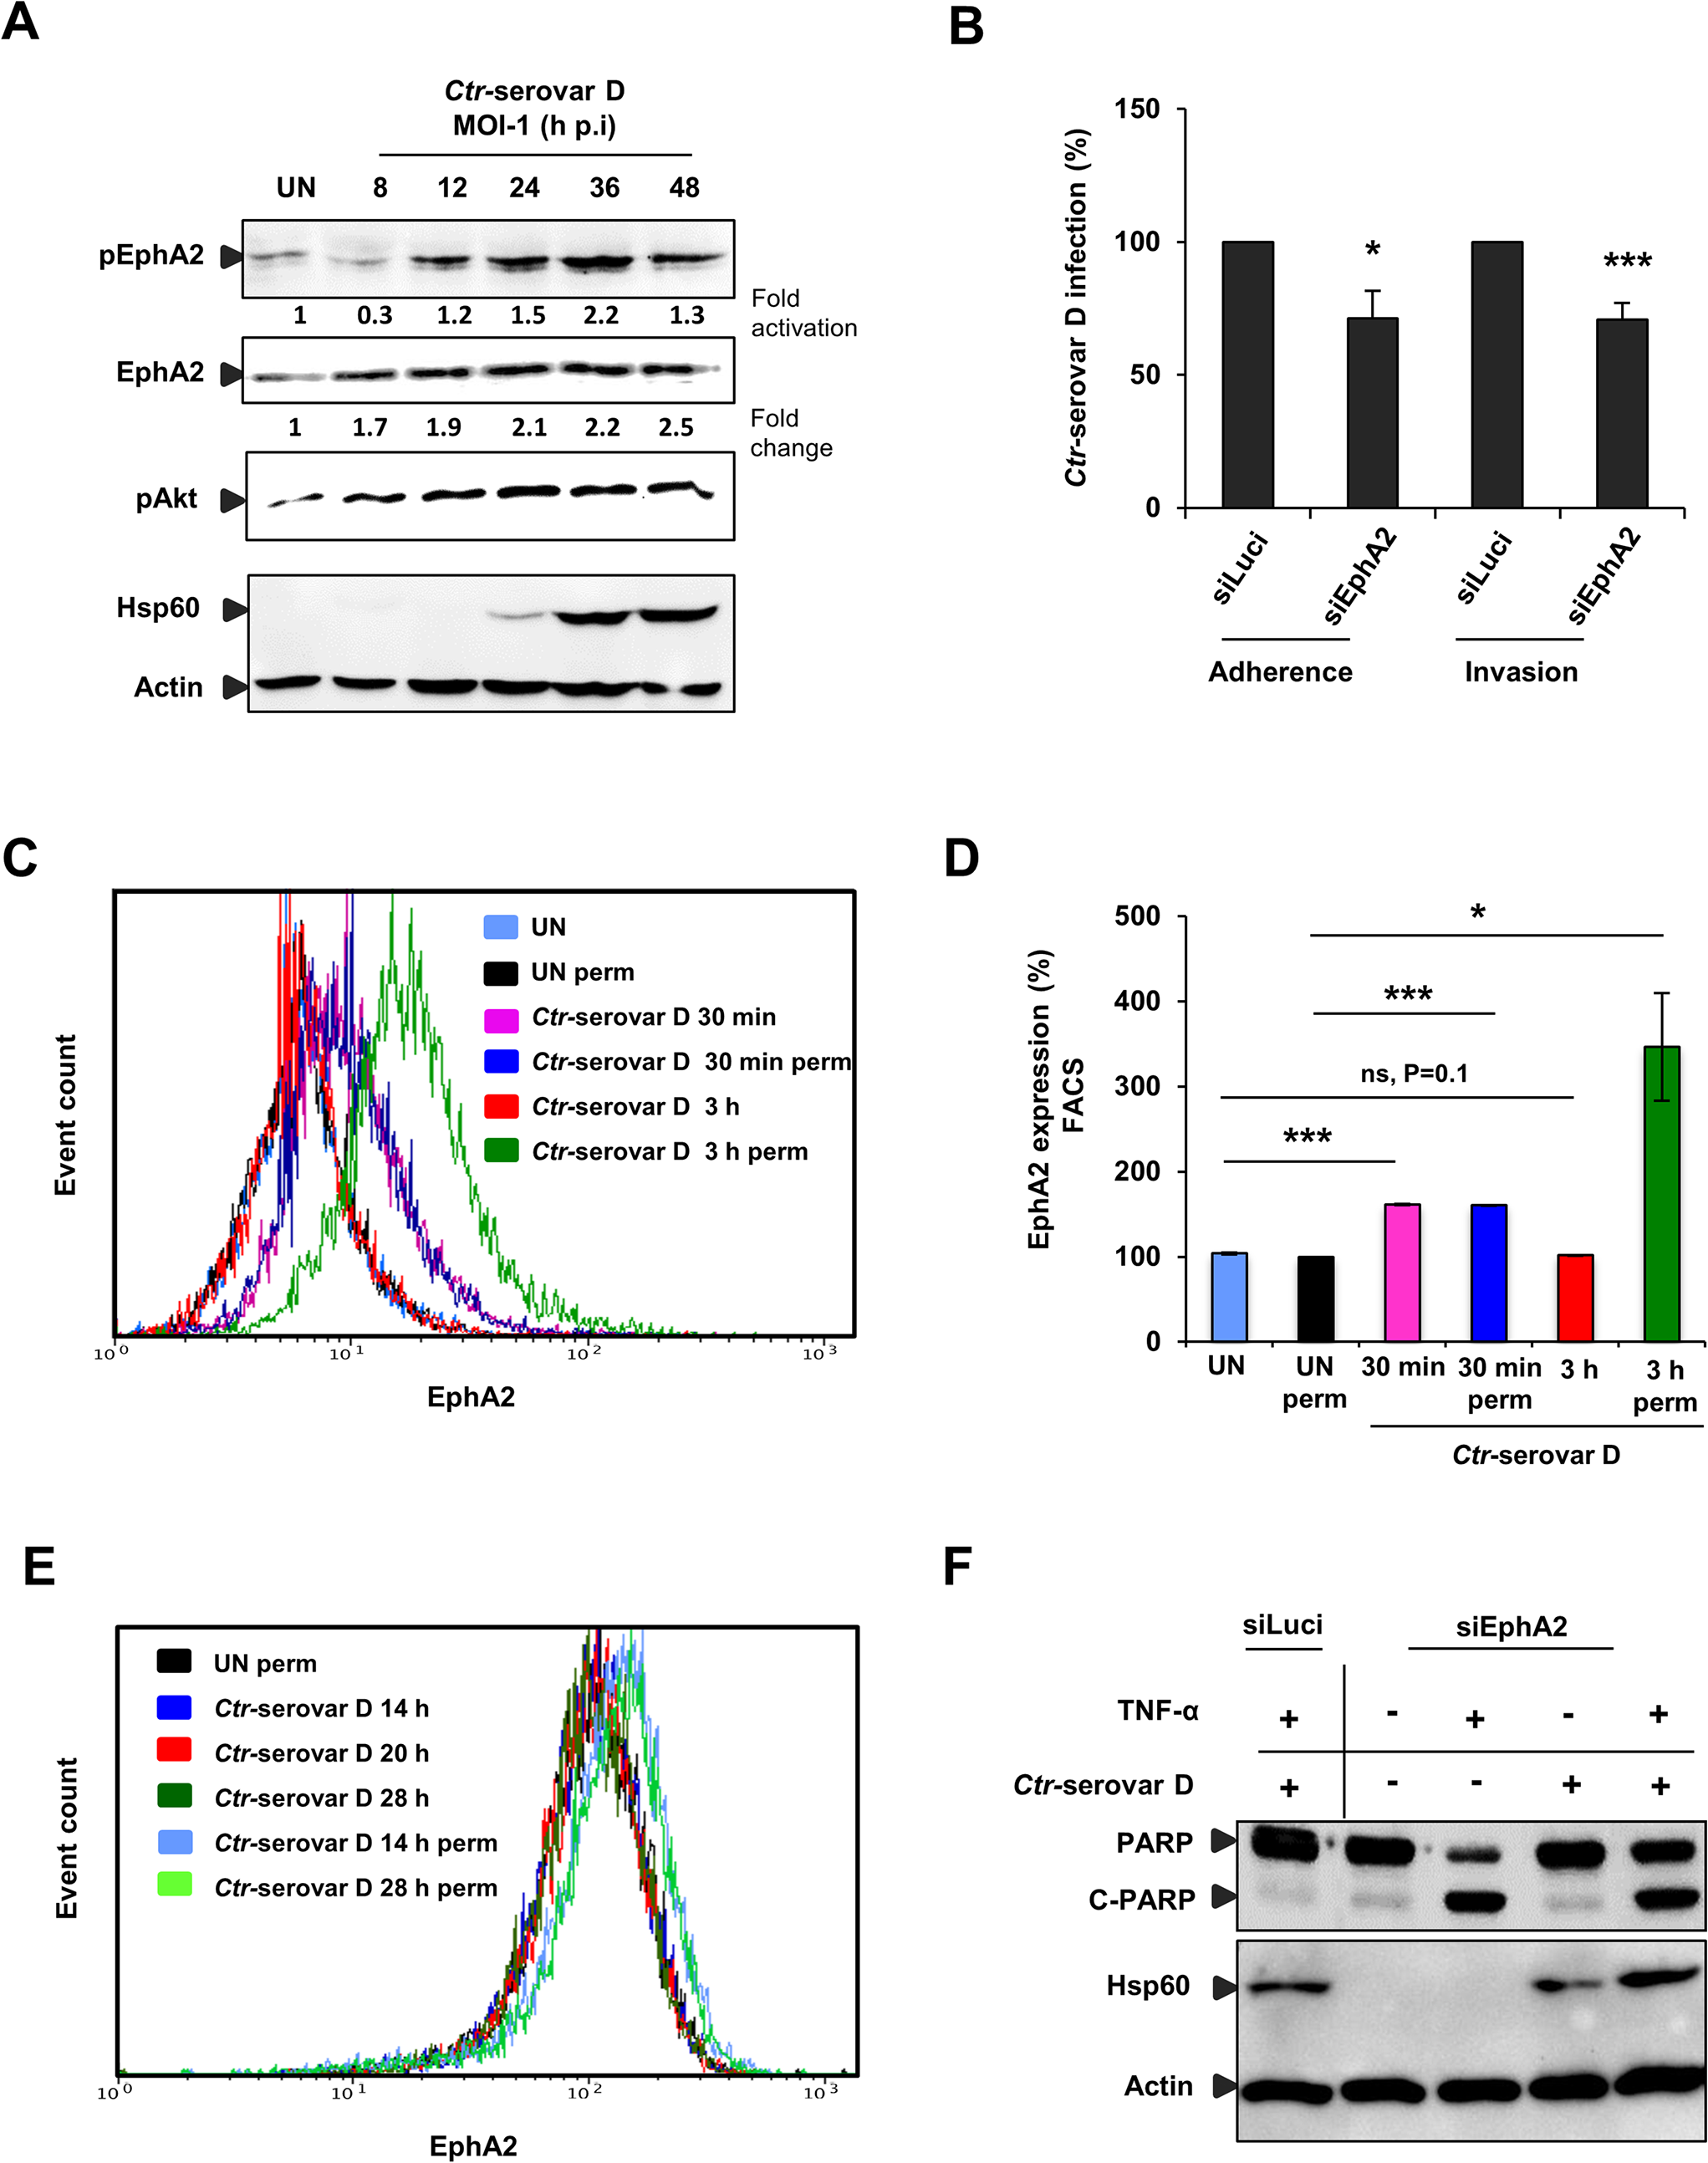 <i>Ctr</i>-serovar D utilize EphA2 signaling to invade the cells and to prevent apoptosis induced by TNF-α.